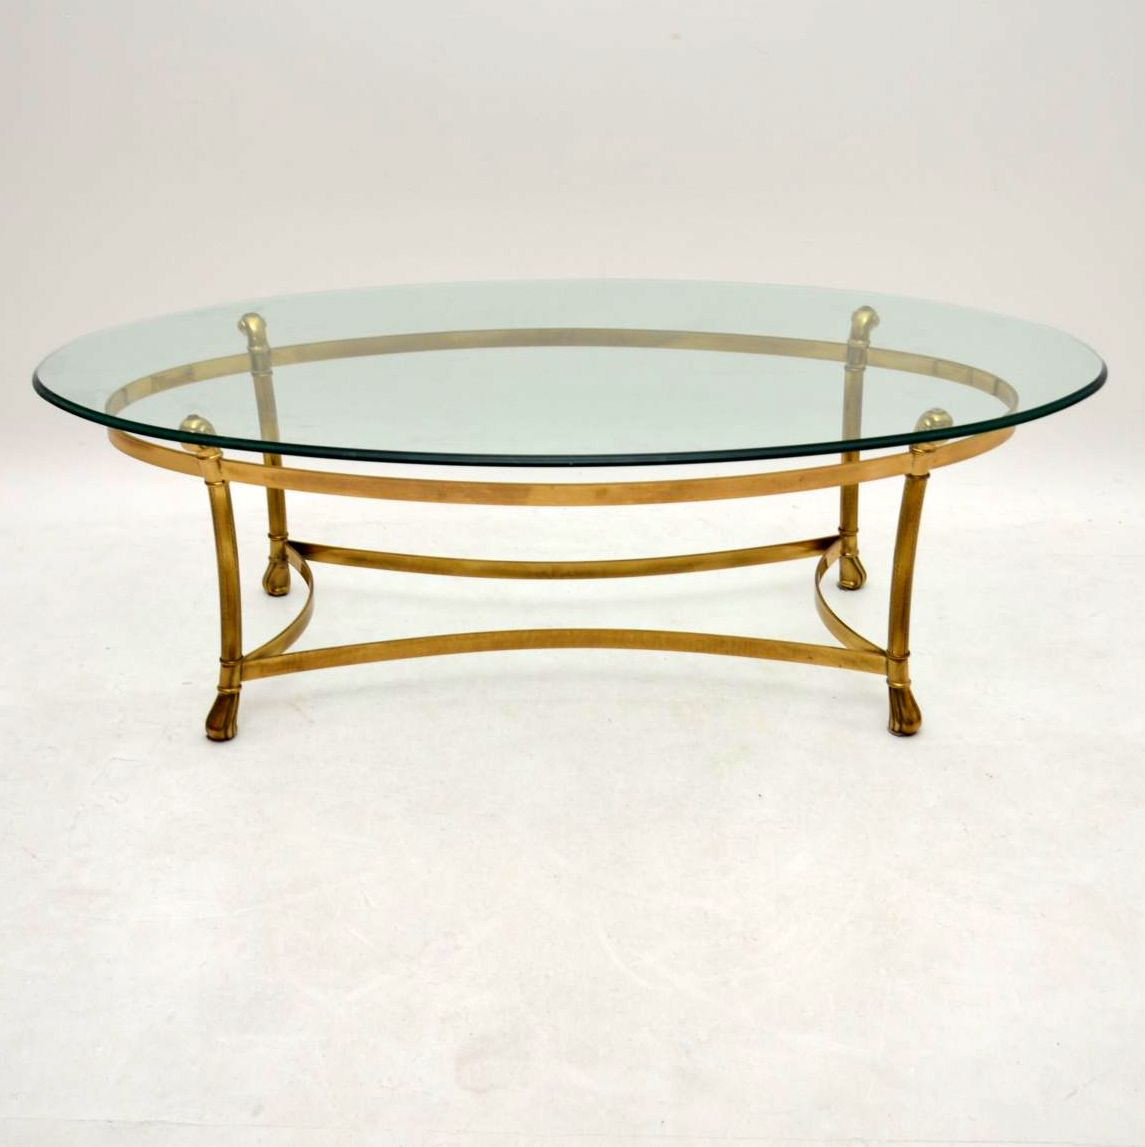 Retro french brass glass coffee table vintage 1970 s for French glass coffee table